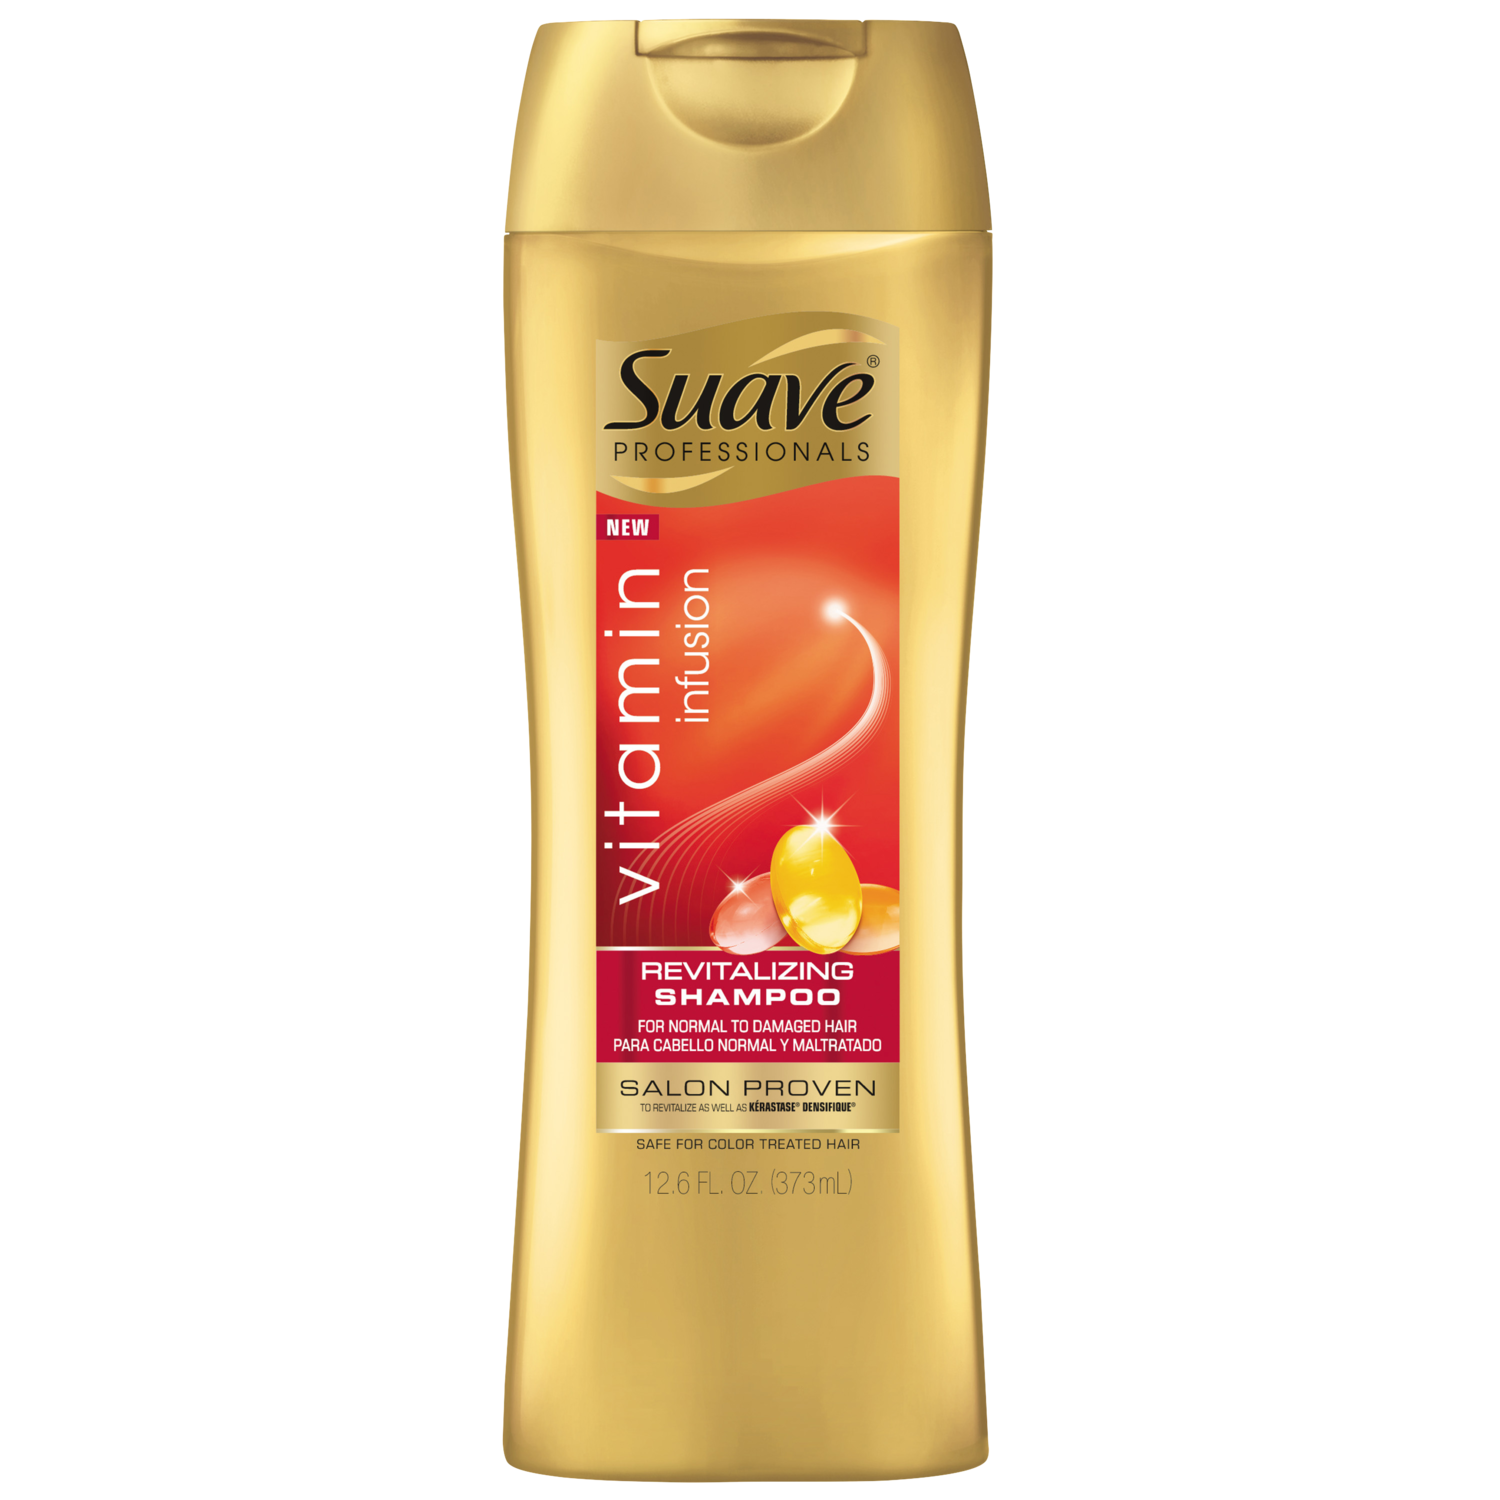 [Vitamin Infusion Revitalizing Shampoo 12.6oz, Woman holding Suave® shampoo product in hand]